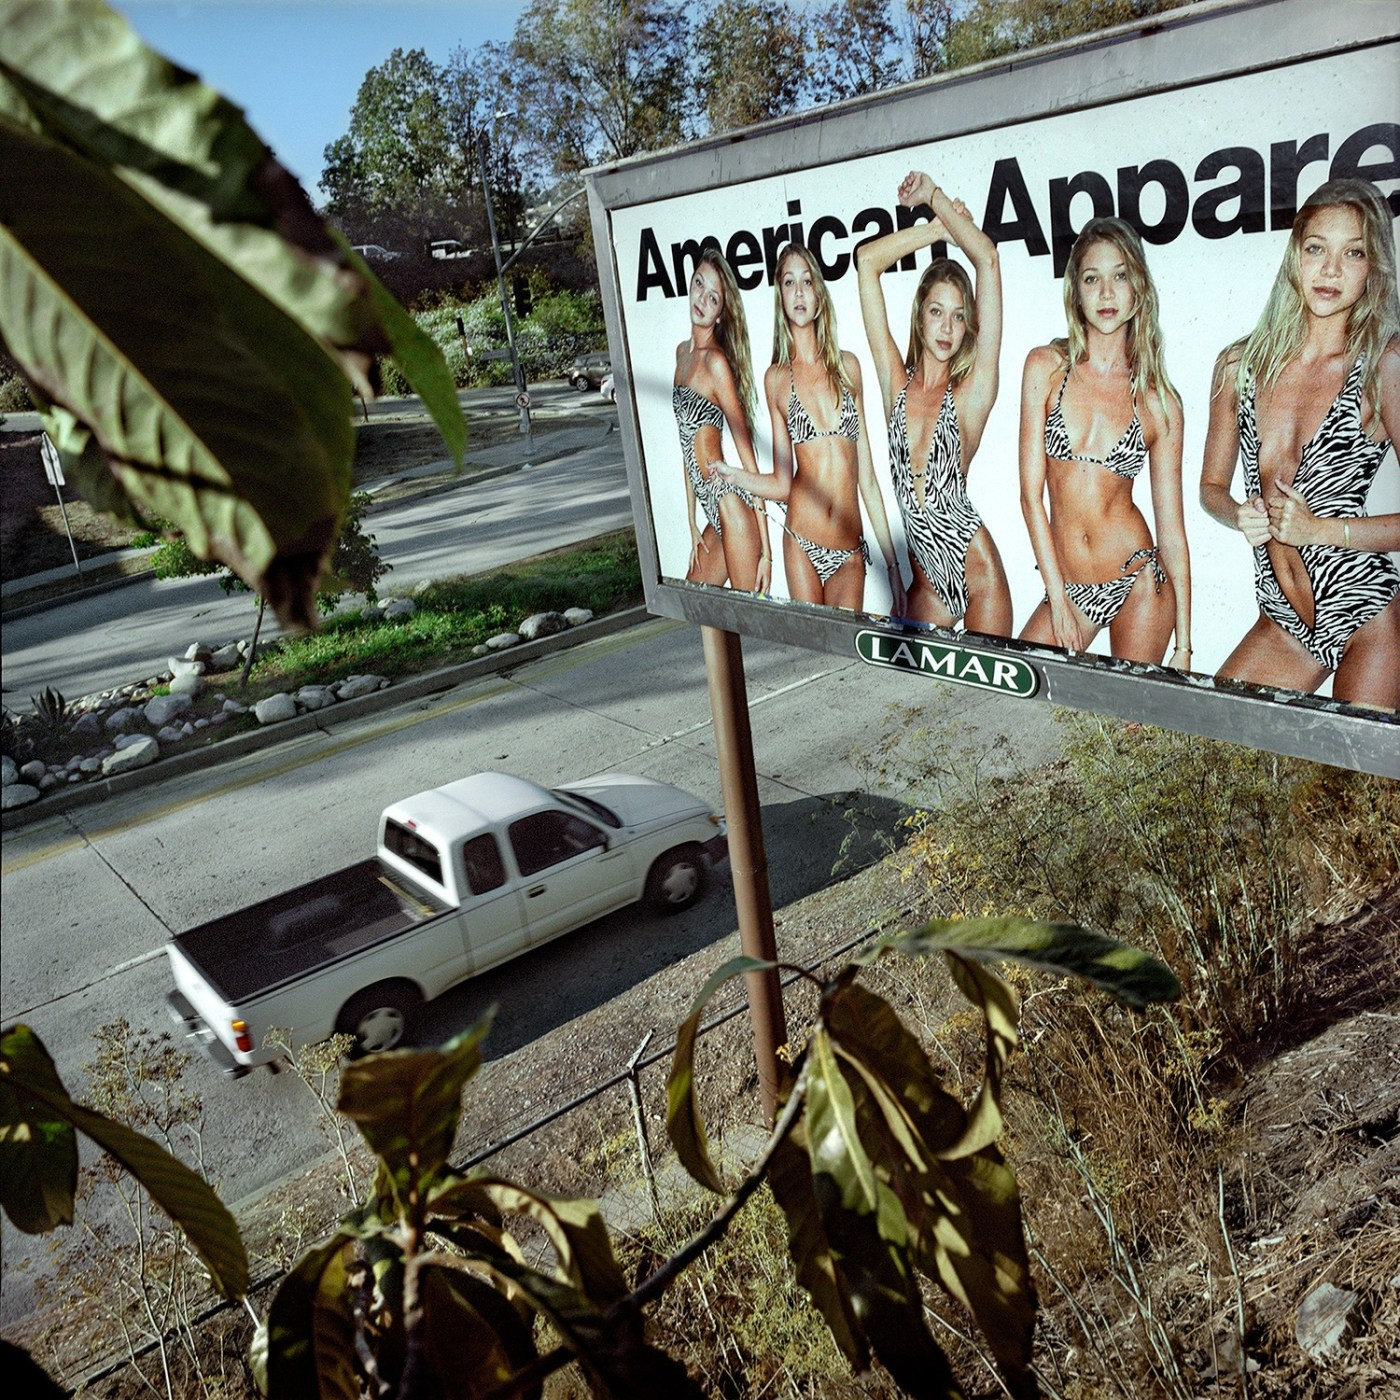 Thomas Alleman The American Apparel